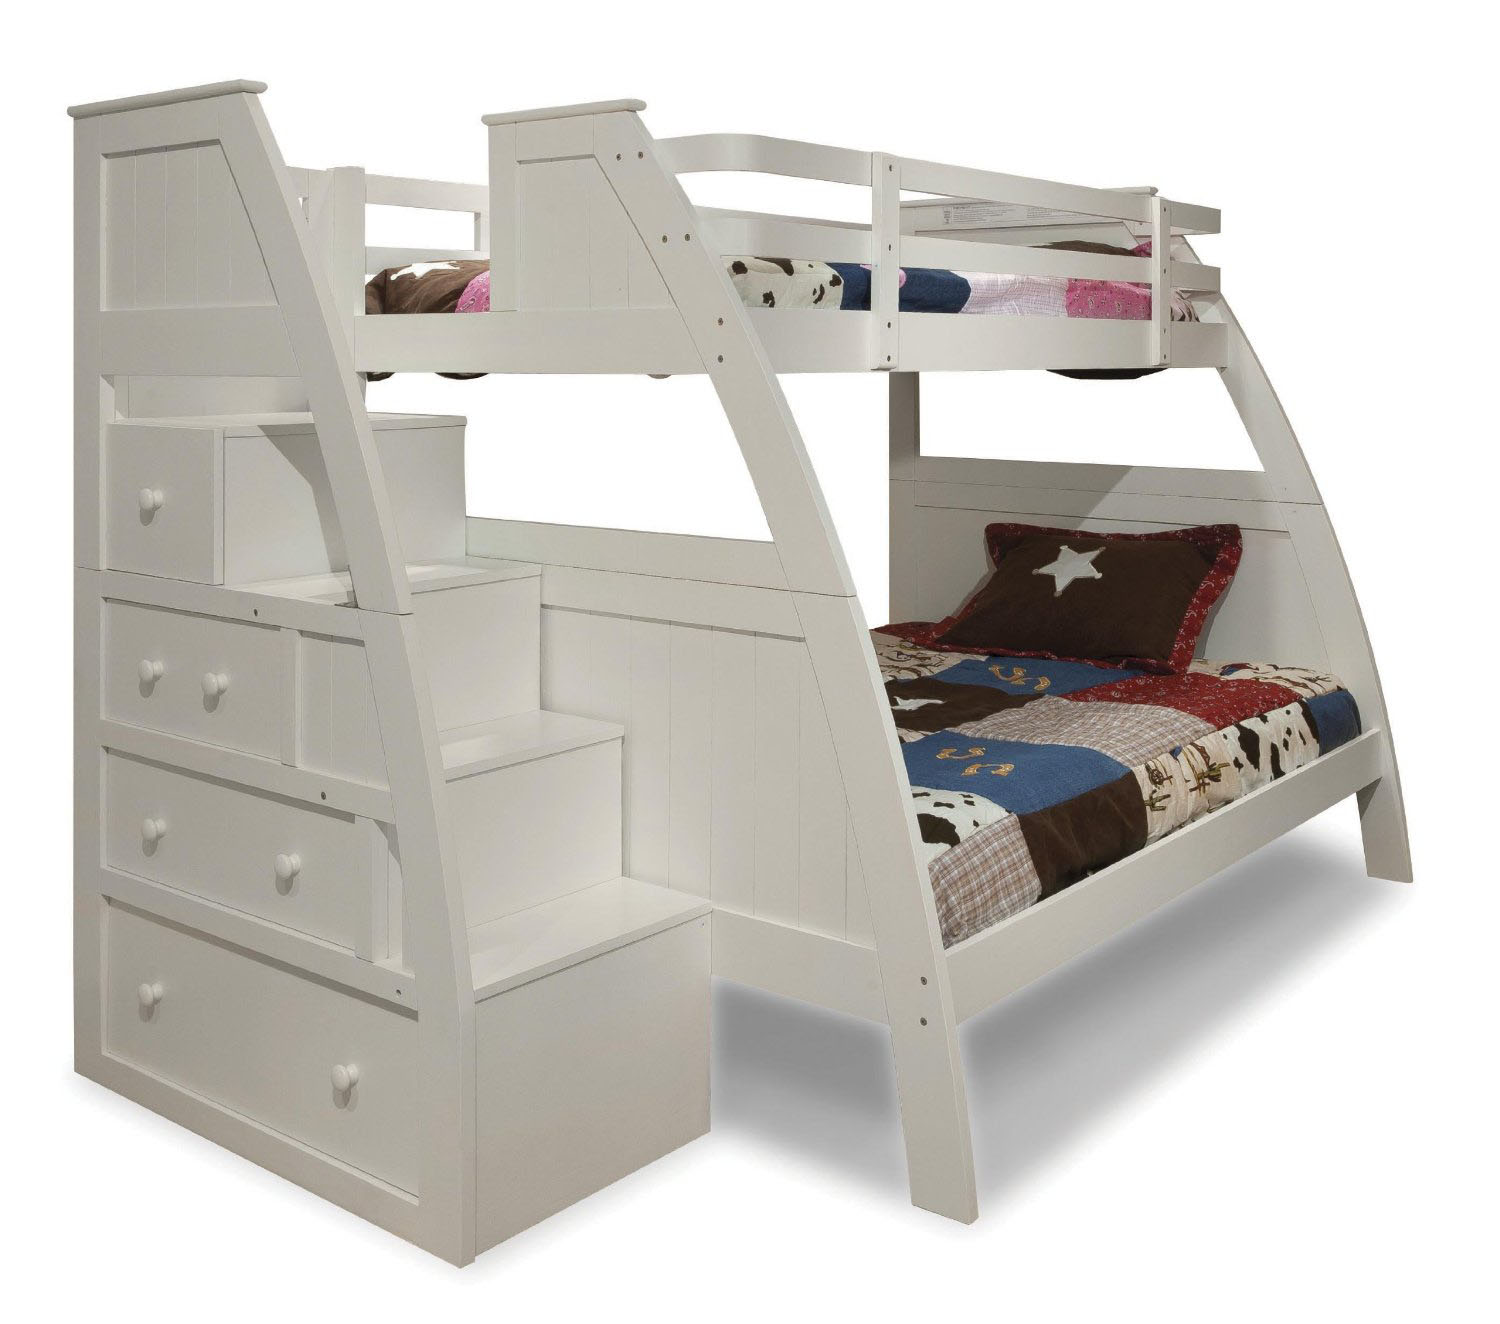 Bunk Beds With Stairway Storage Drawers